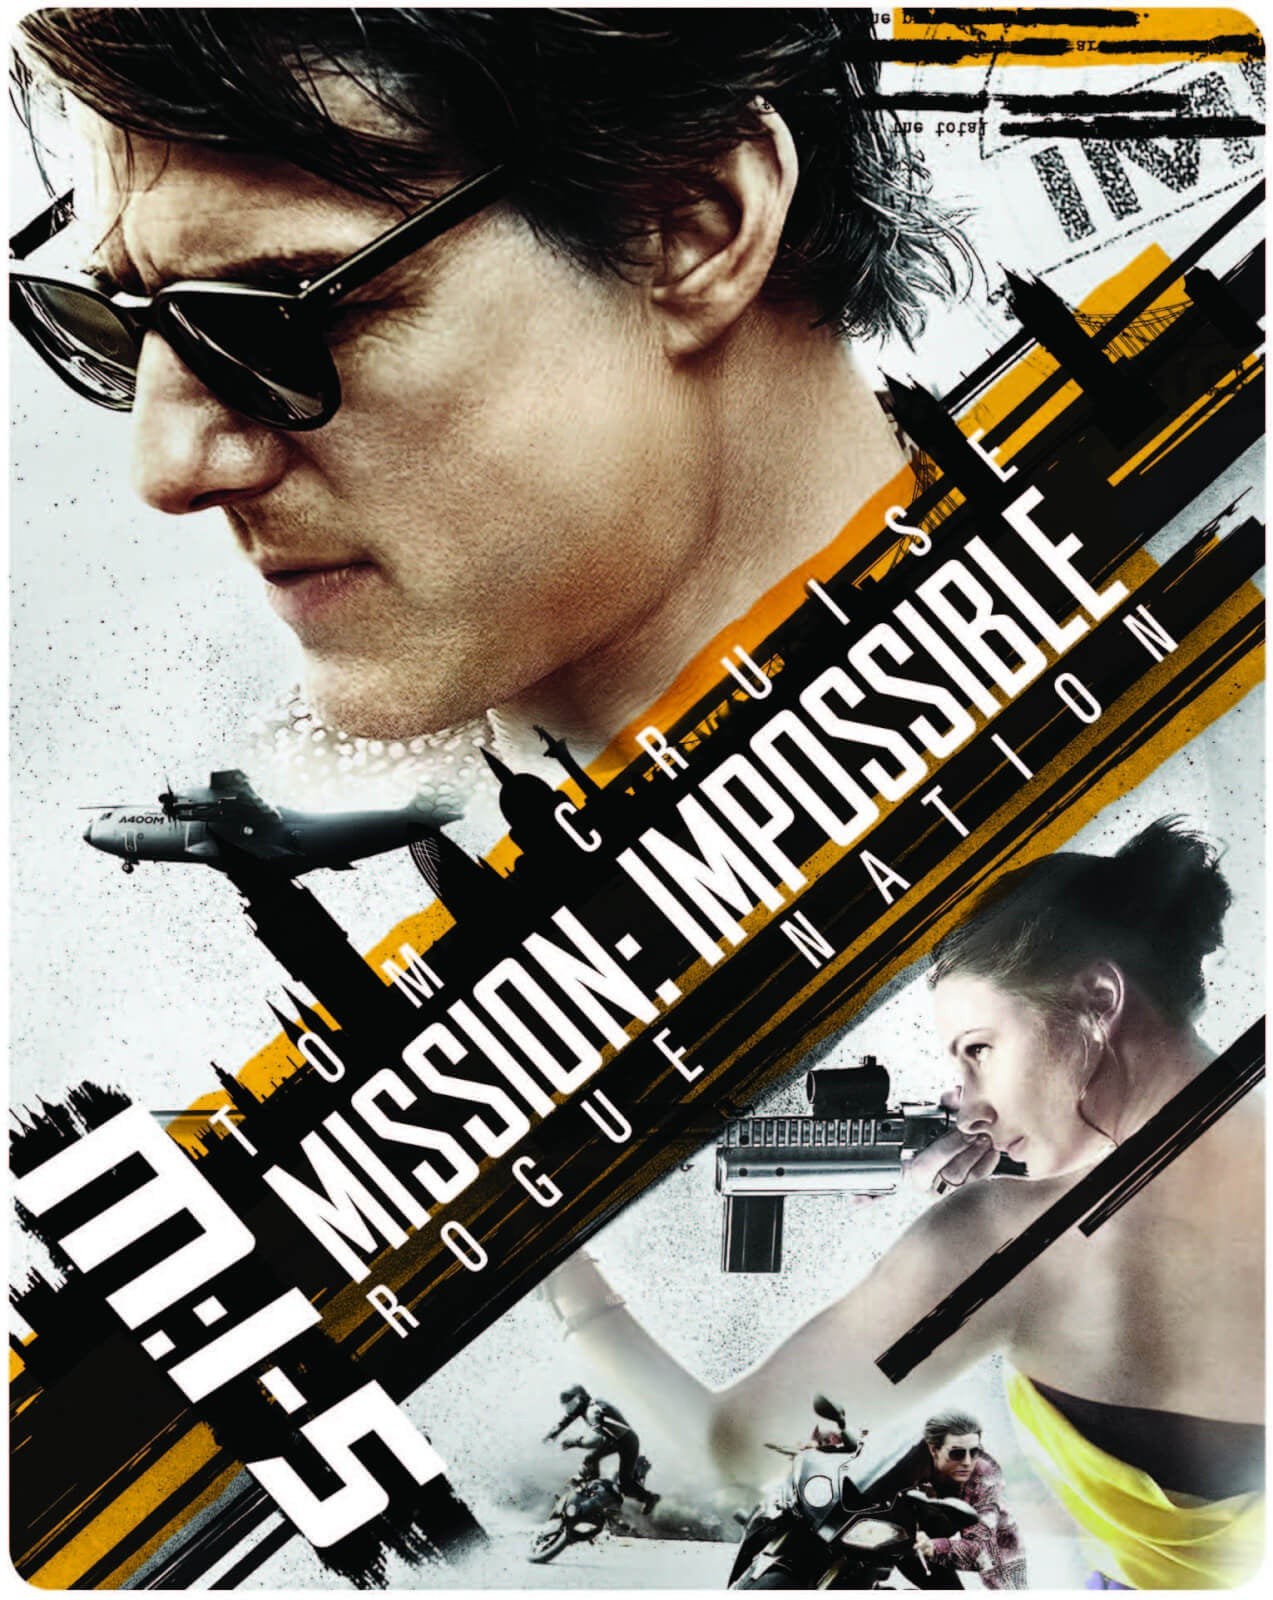 Mission Impossible Rogue Nation (2015) Vudu HD redemption only